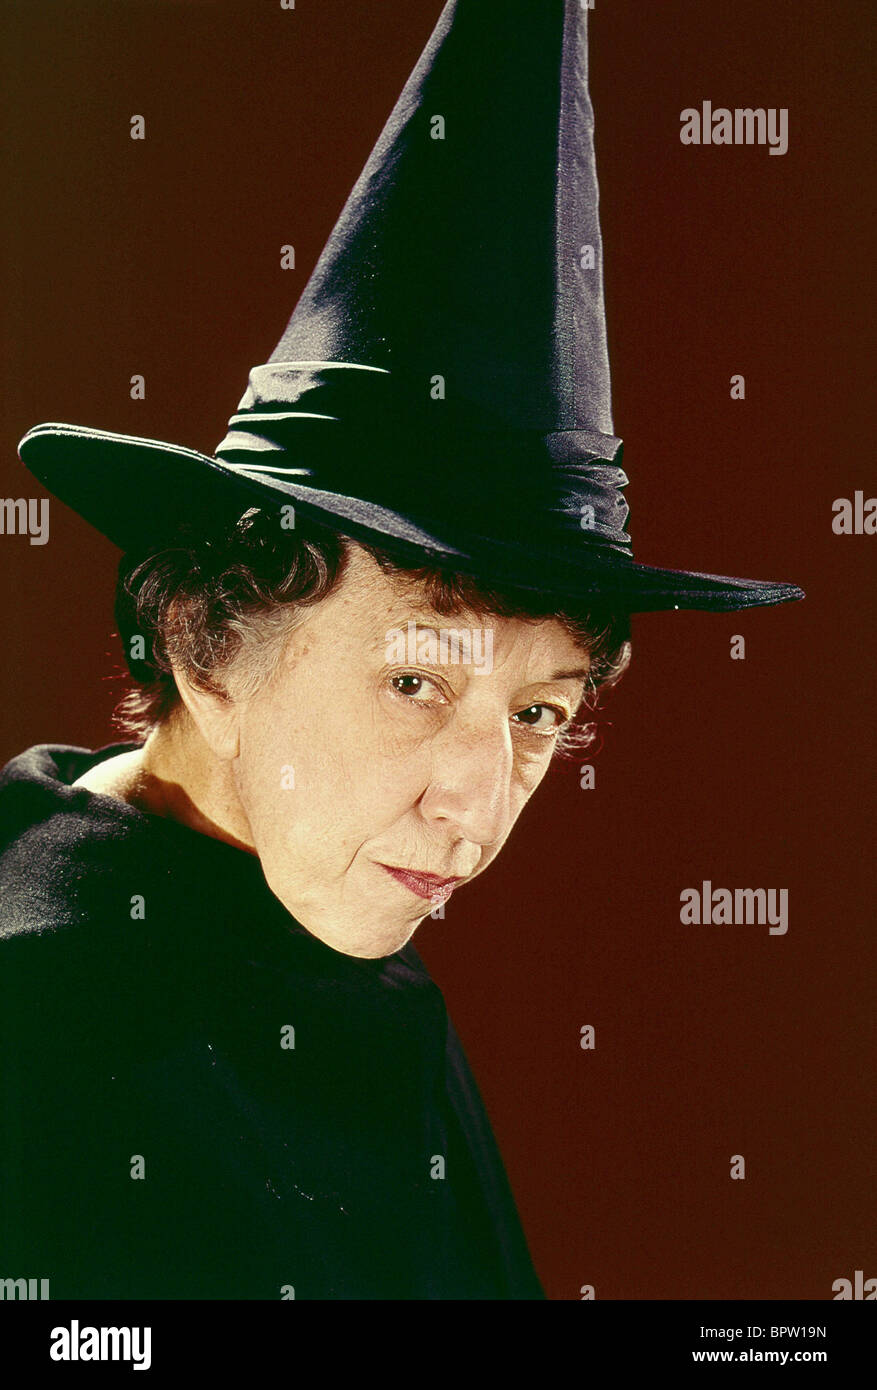 Margaret Hamilton (actress) nude (95 pictures) Video, Twitter, butt